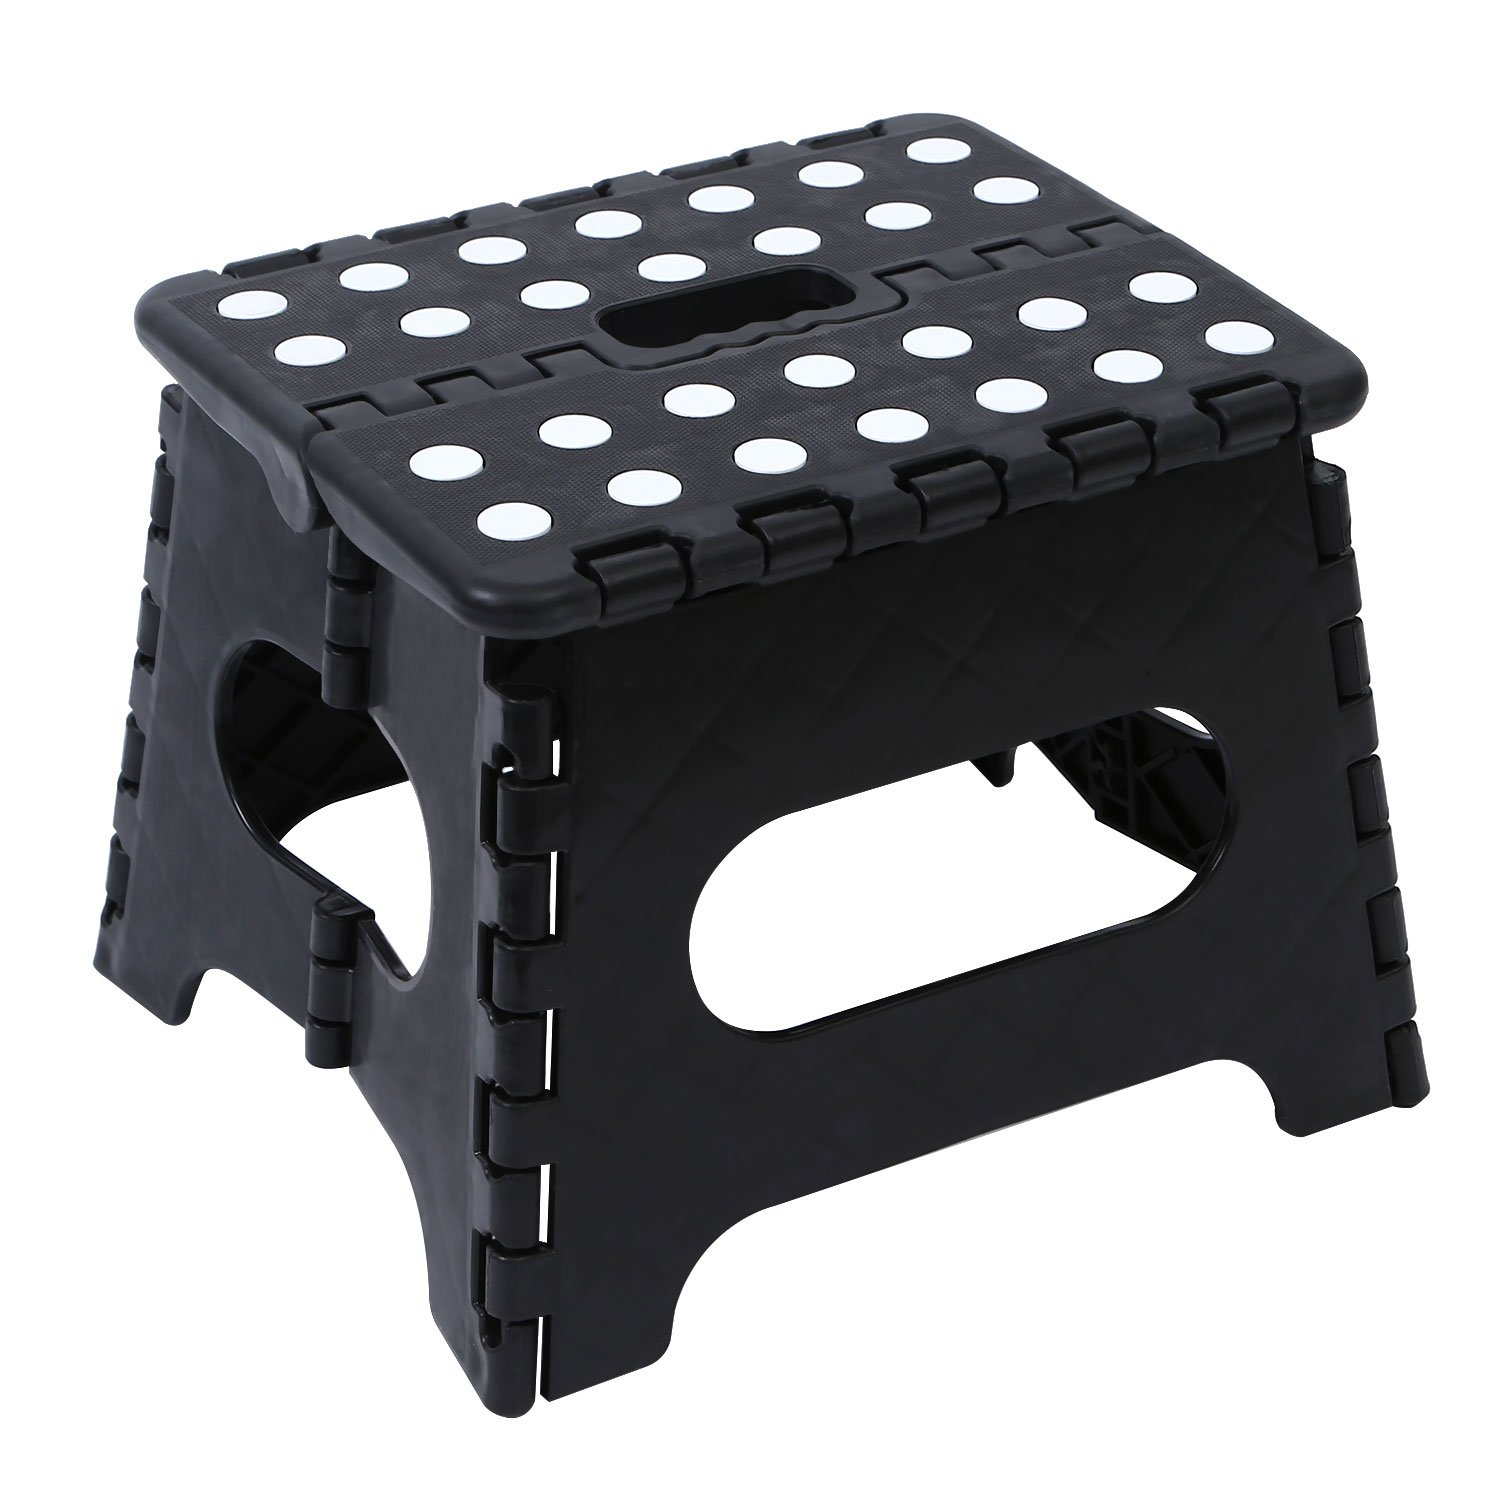 Maddott Super Strong Folding Step Stool for Adults and Kids, 8x6x7.5inch, Holds up to 180 Lb, Black